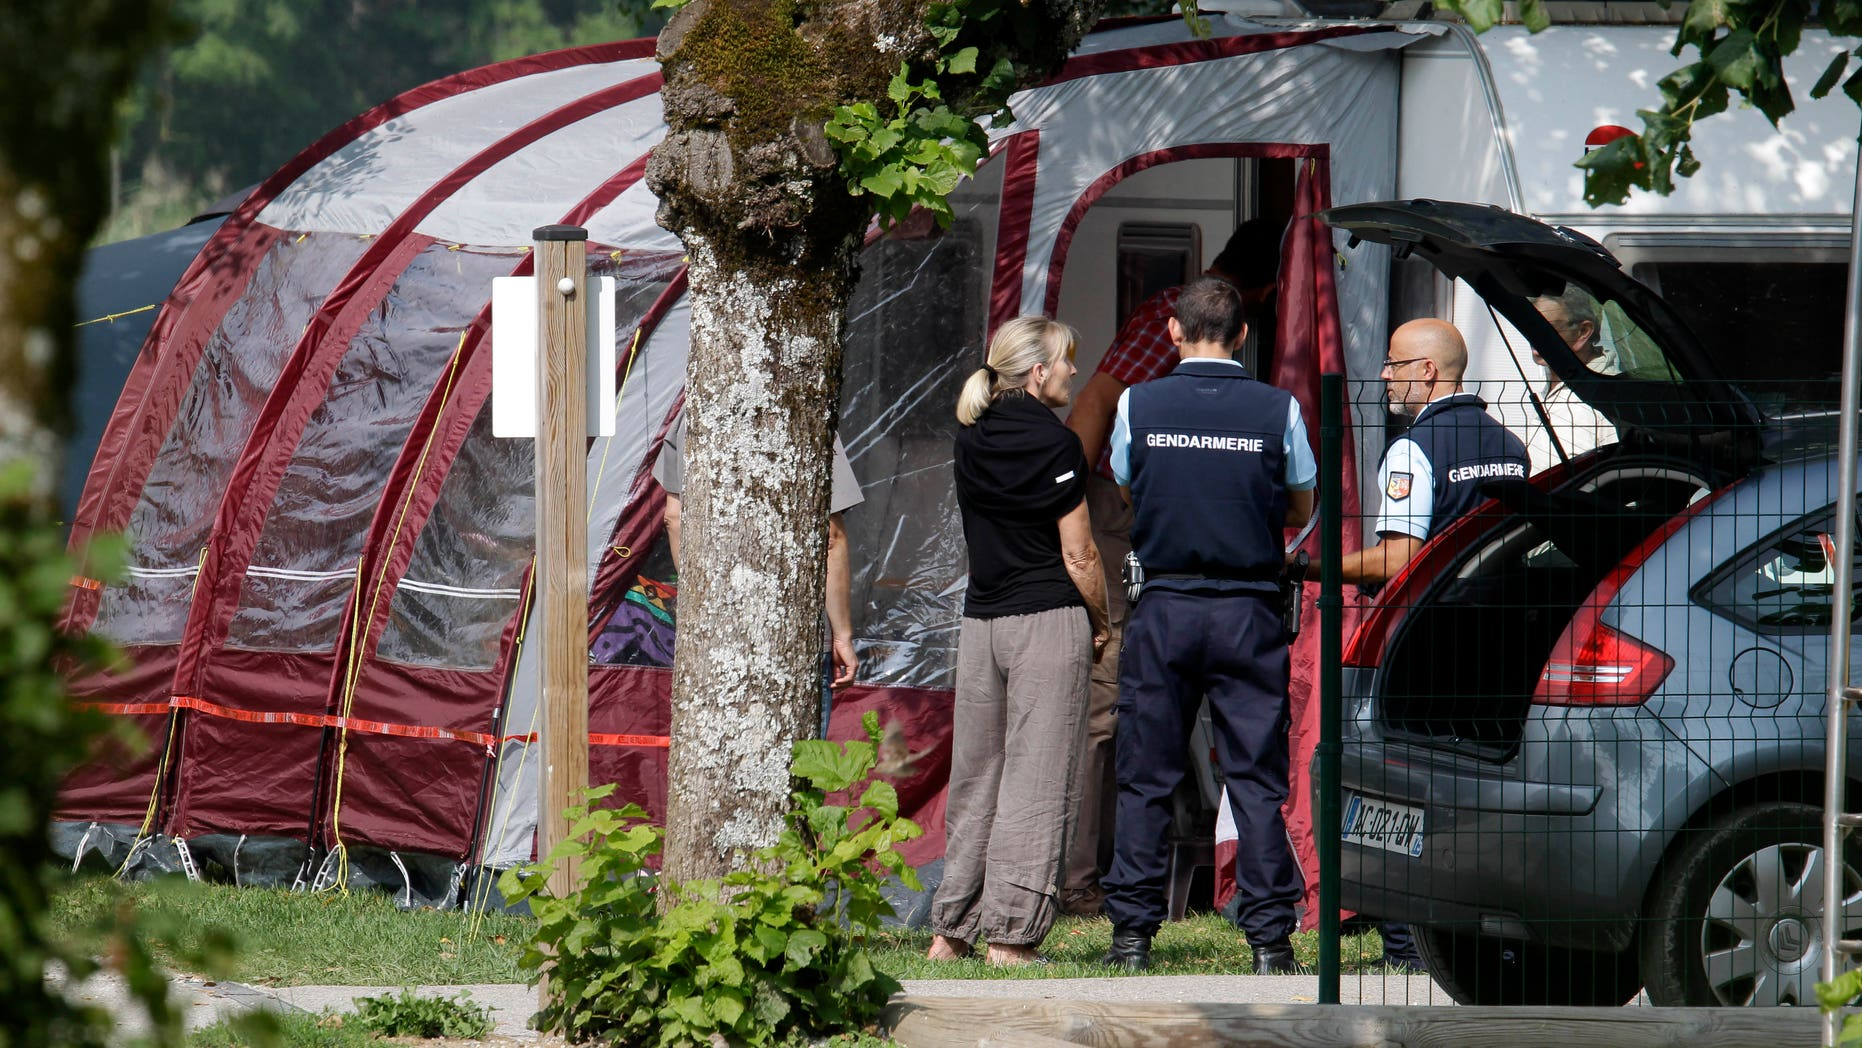 Sept. 6, 2012 - Gendarmes and investigators stand at the camp site where the slain British family were holidaying in Saint Jorioz, near Annecy,  France.